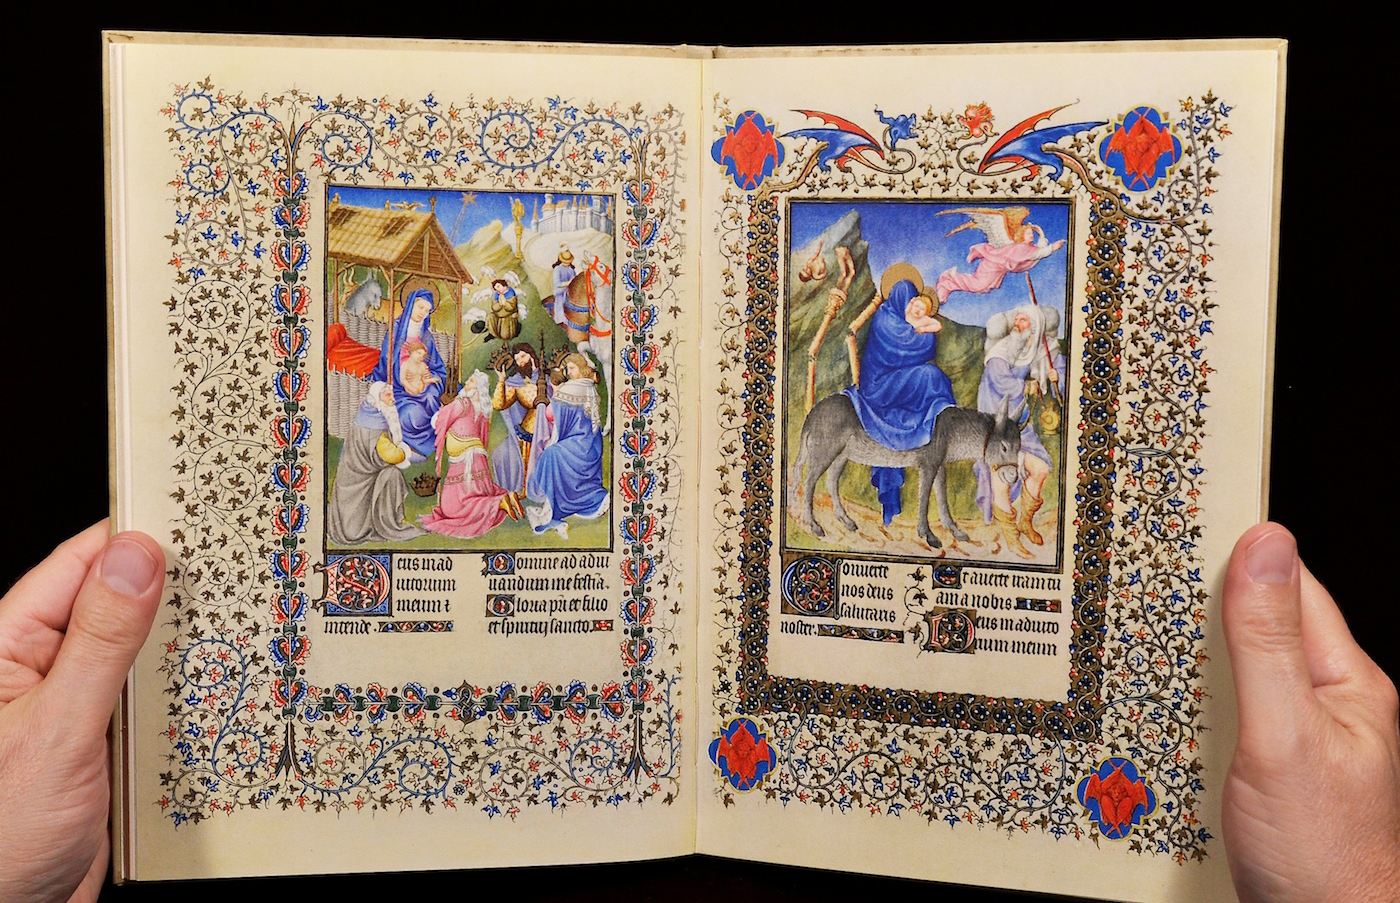 Berry, Jean F, and James J. Rorimer. The Belles Heures of Jean, Duke of Berry: Prince of France. New York: Metropolitan Museum of Art, 1958.